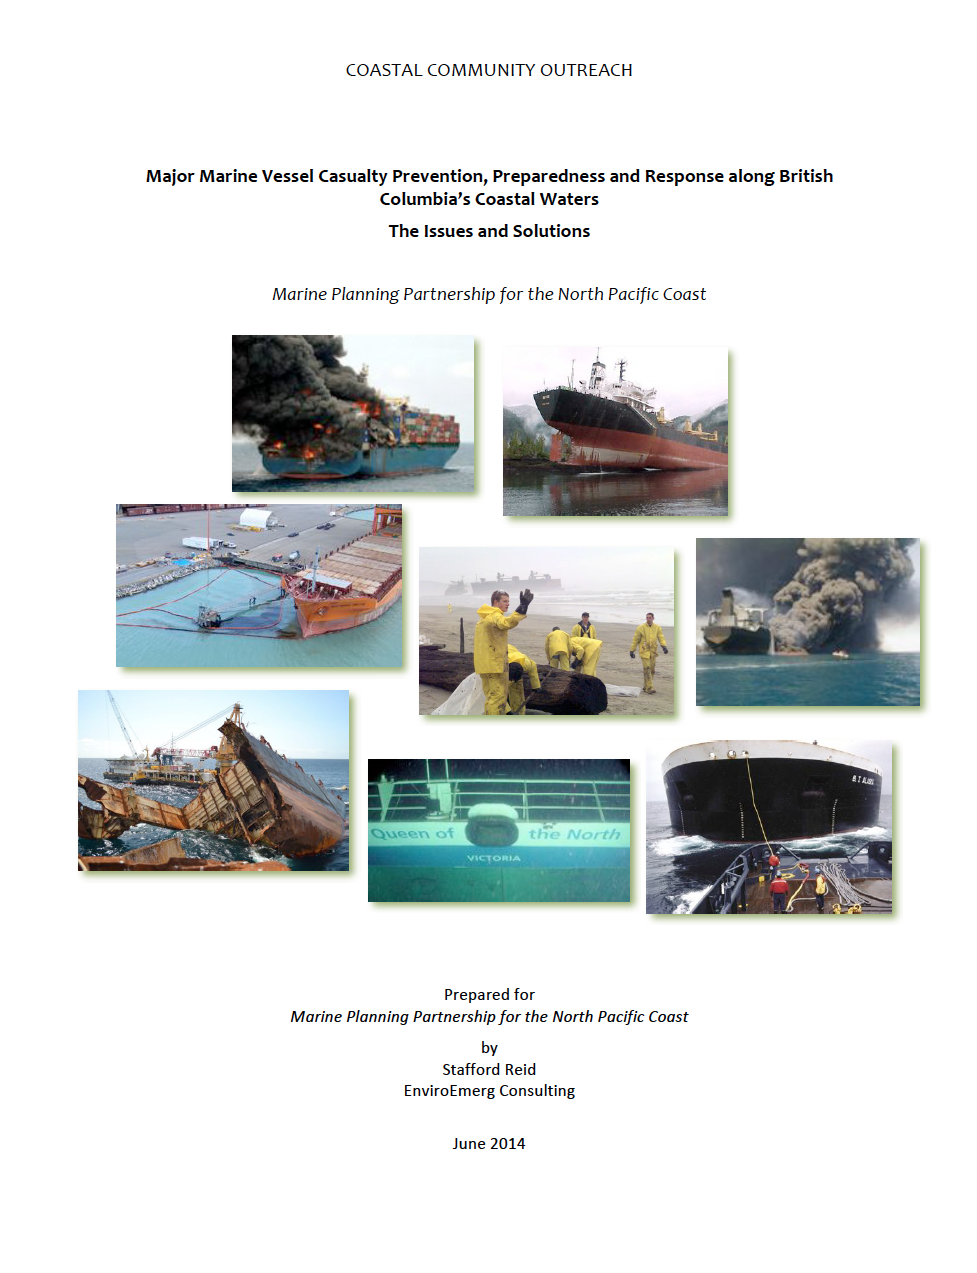 Major&Marine&Vessel&Casualty&Prevention,&Preparedness&and&Response&along&British& Columbia's&Coastal&Waters&